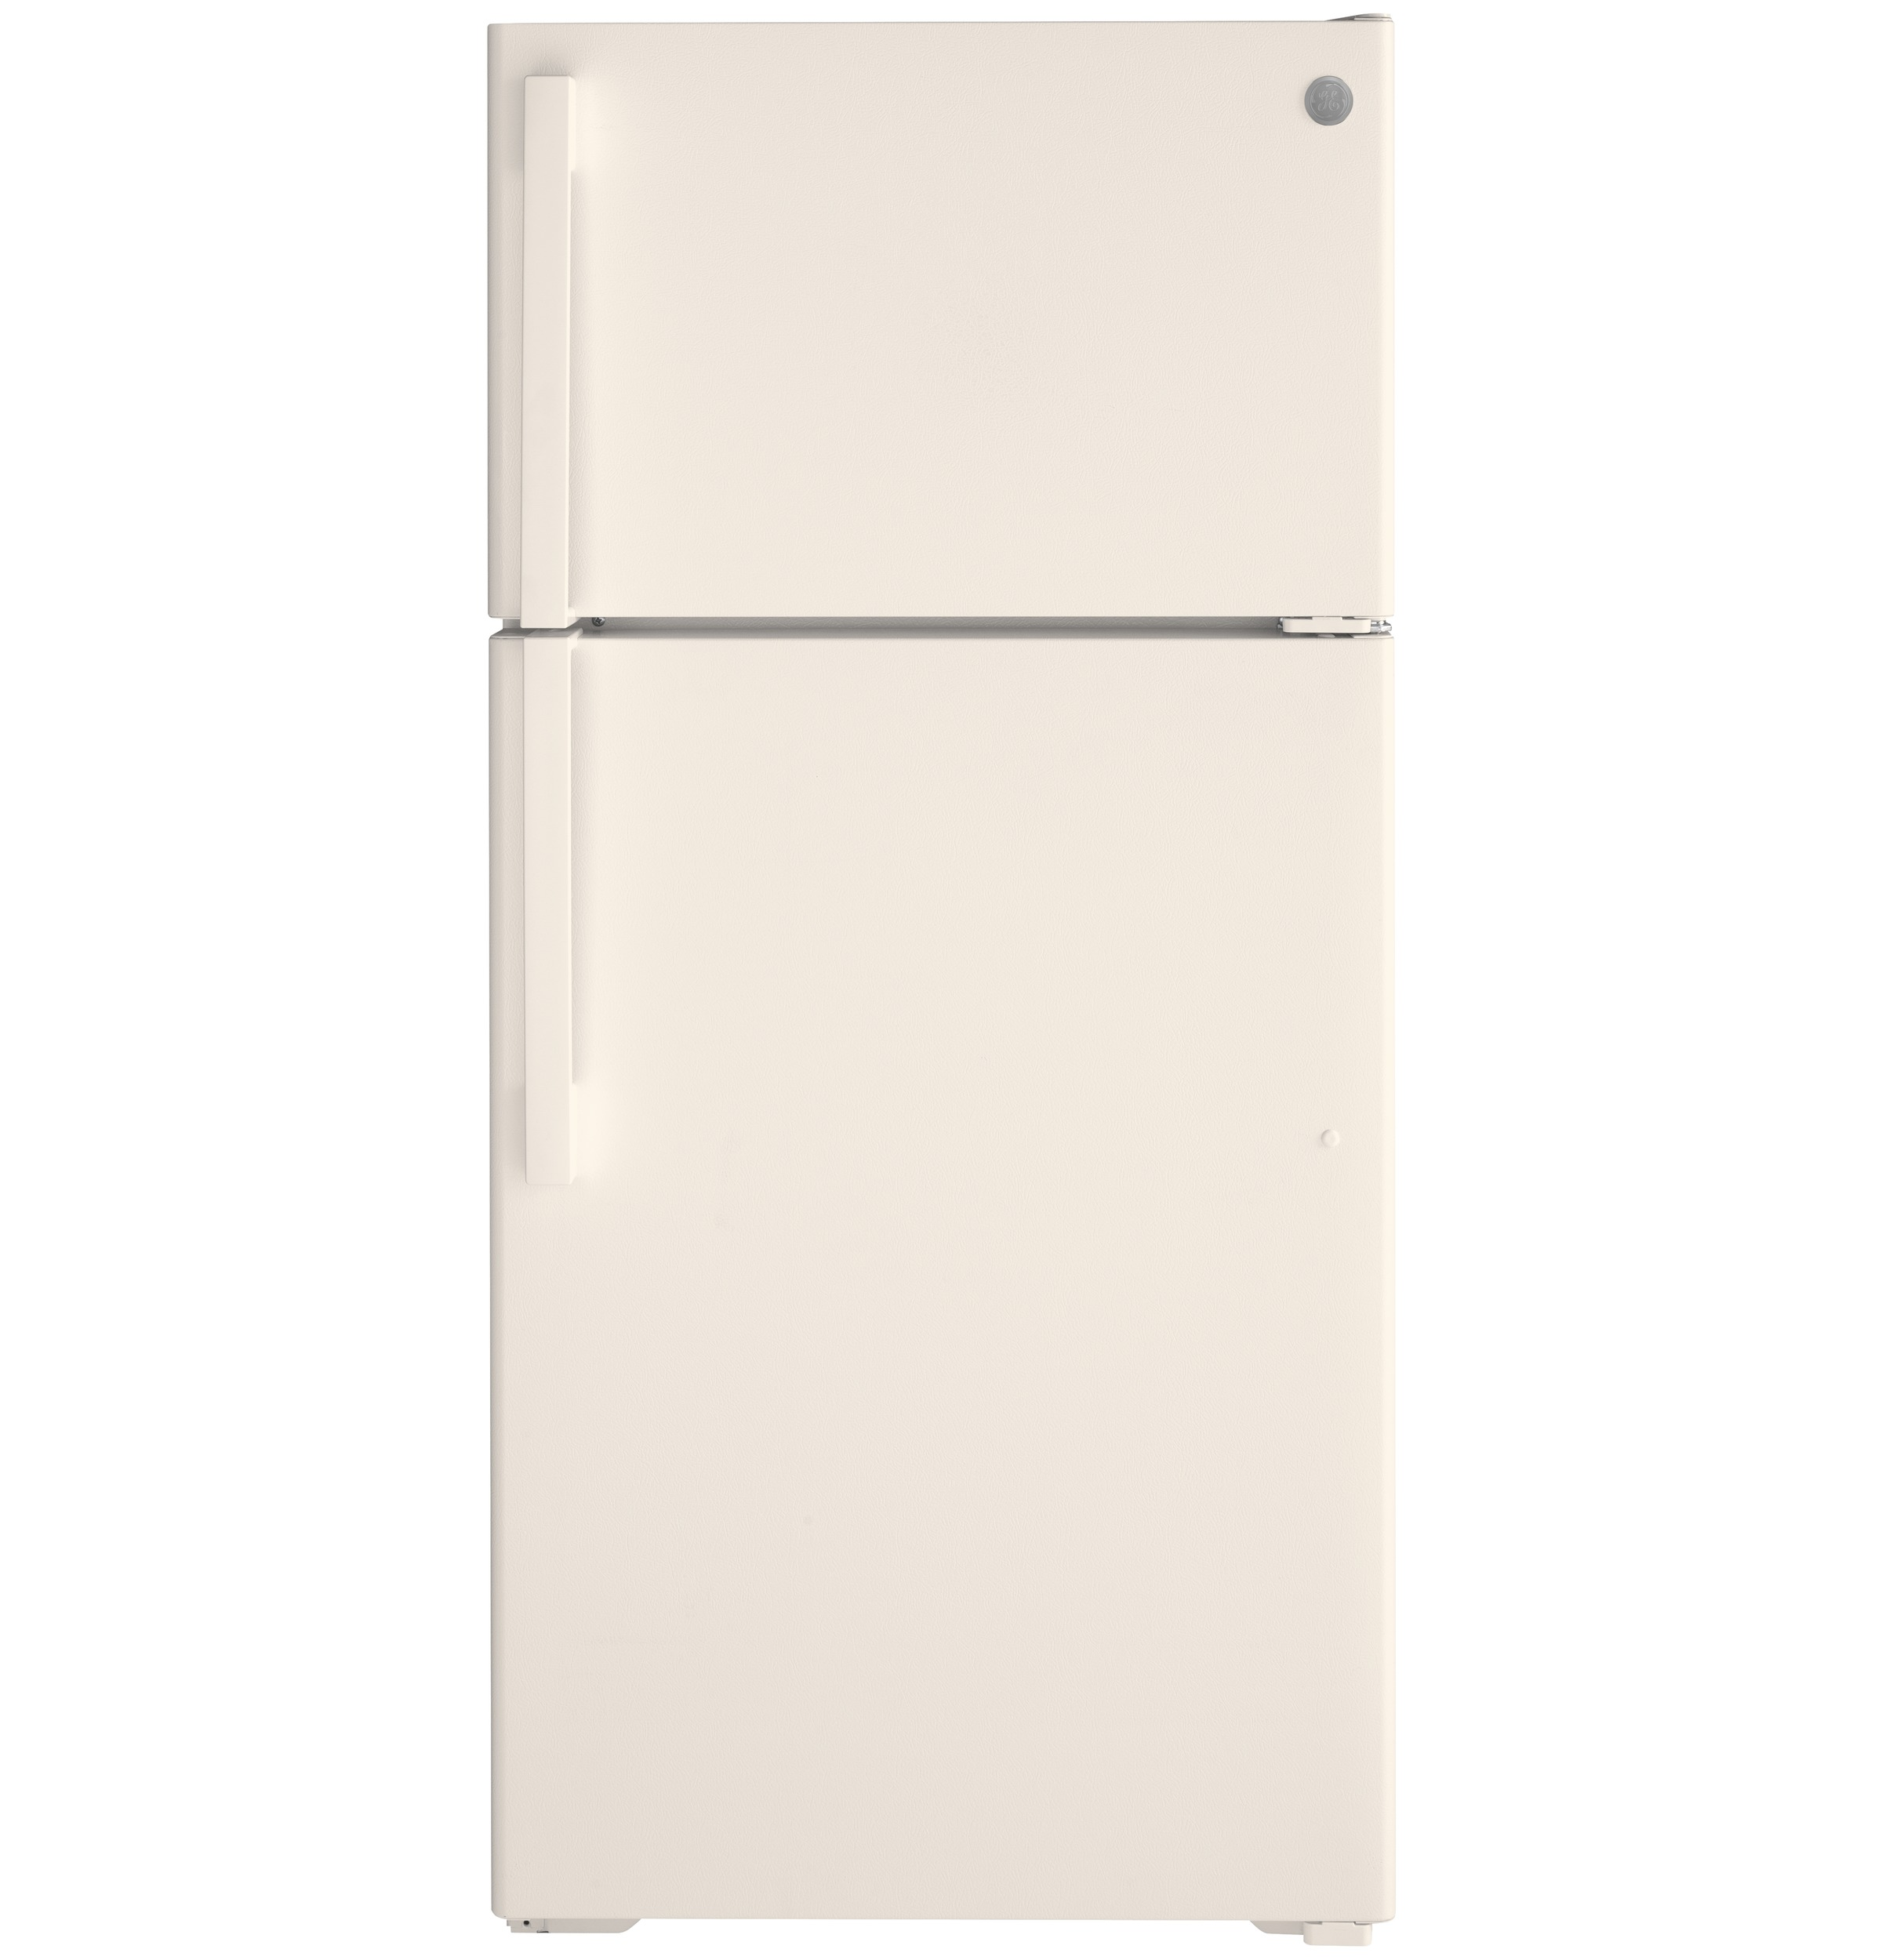 GE GE® ENERGY STAR® 15.6 Cu. Ft. Top-Freezer Refrigerator